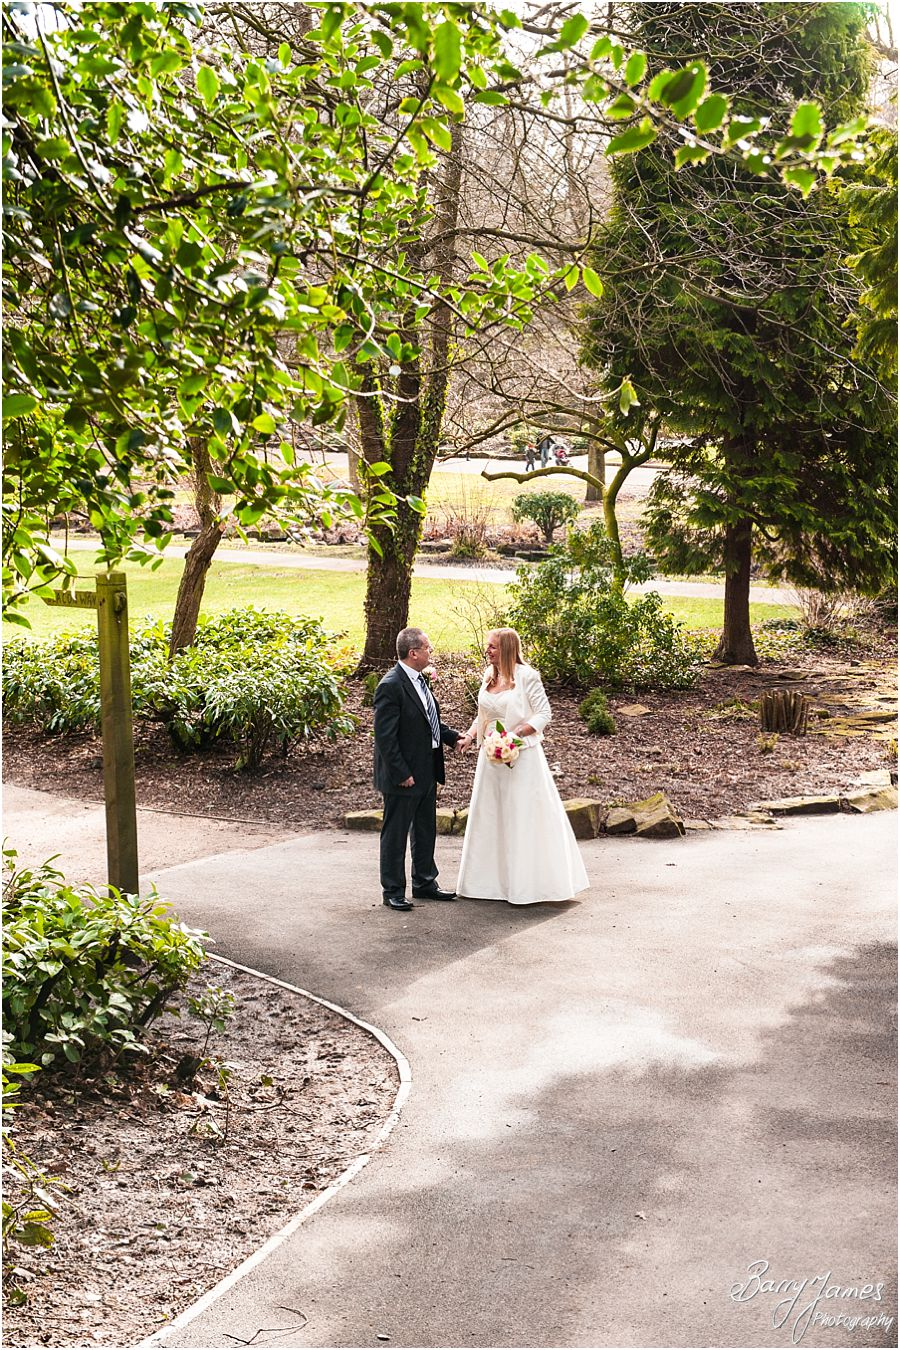 Gorgeous contemporary wedding photographs at Walsall Arboretum in Walsall by Professional Wedding Photographer Barry James